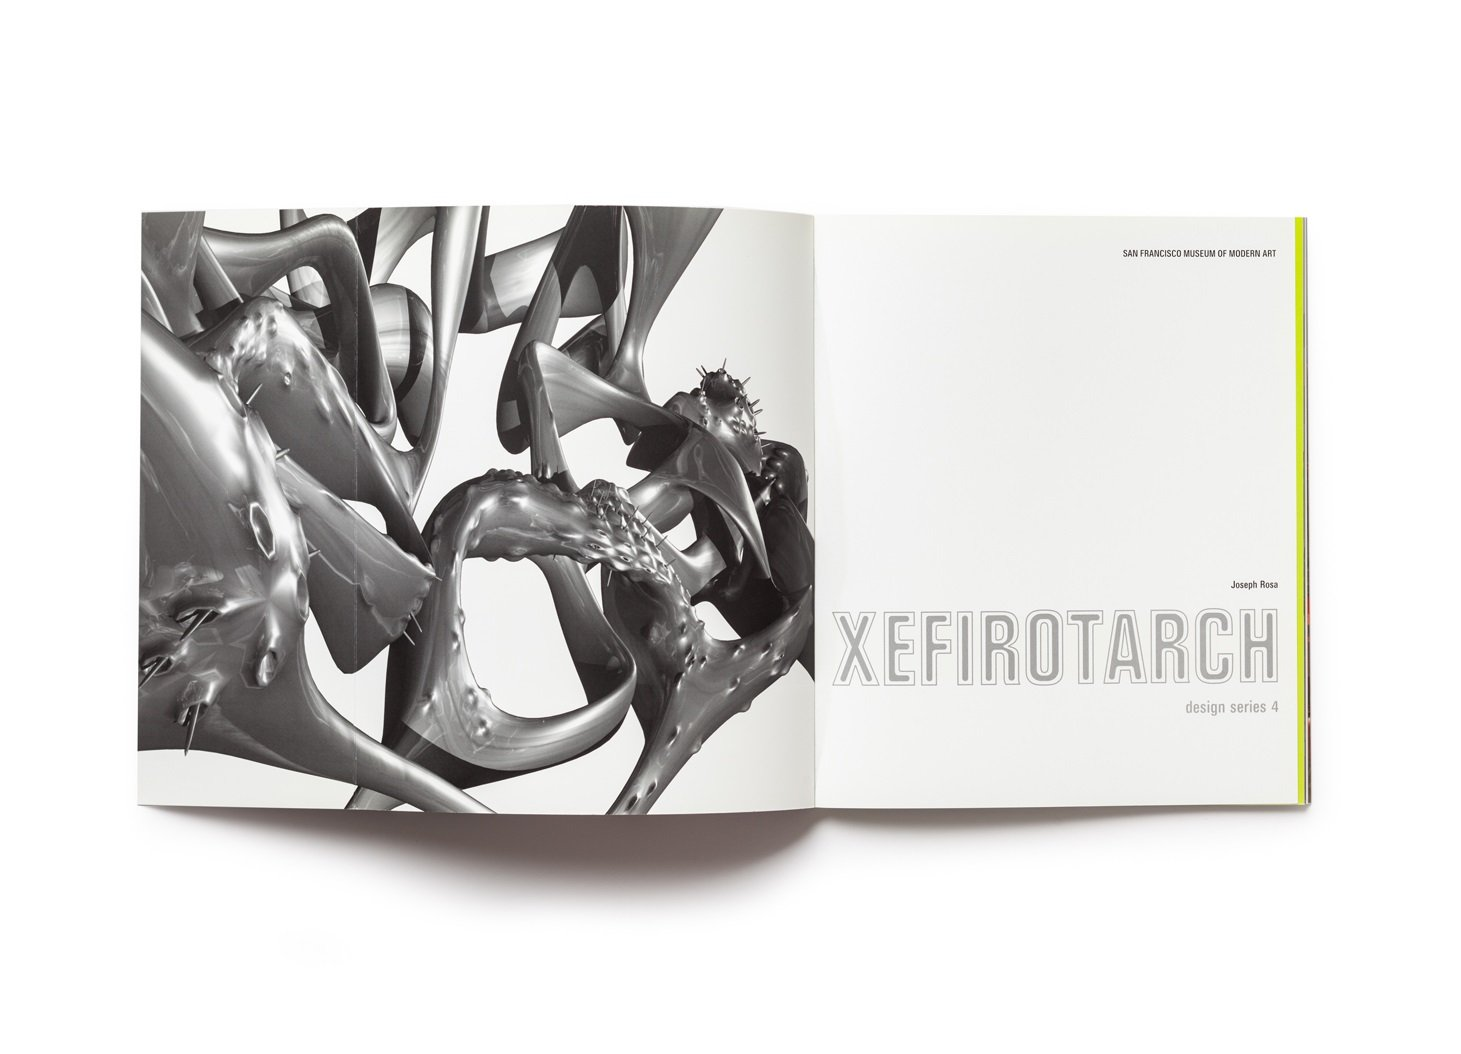 Xefirotarch: design series 4 publication front endsheet (open)